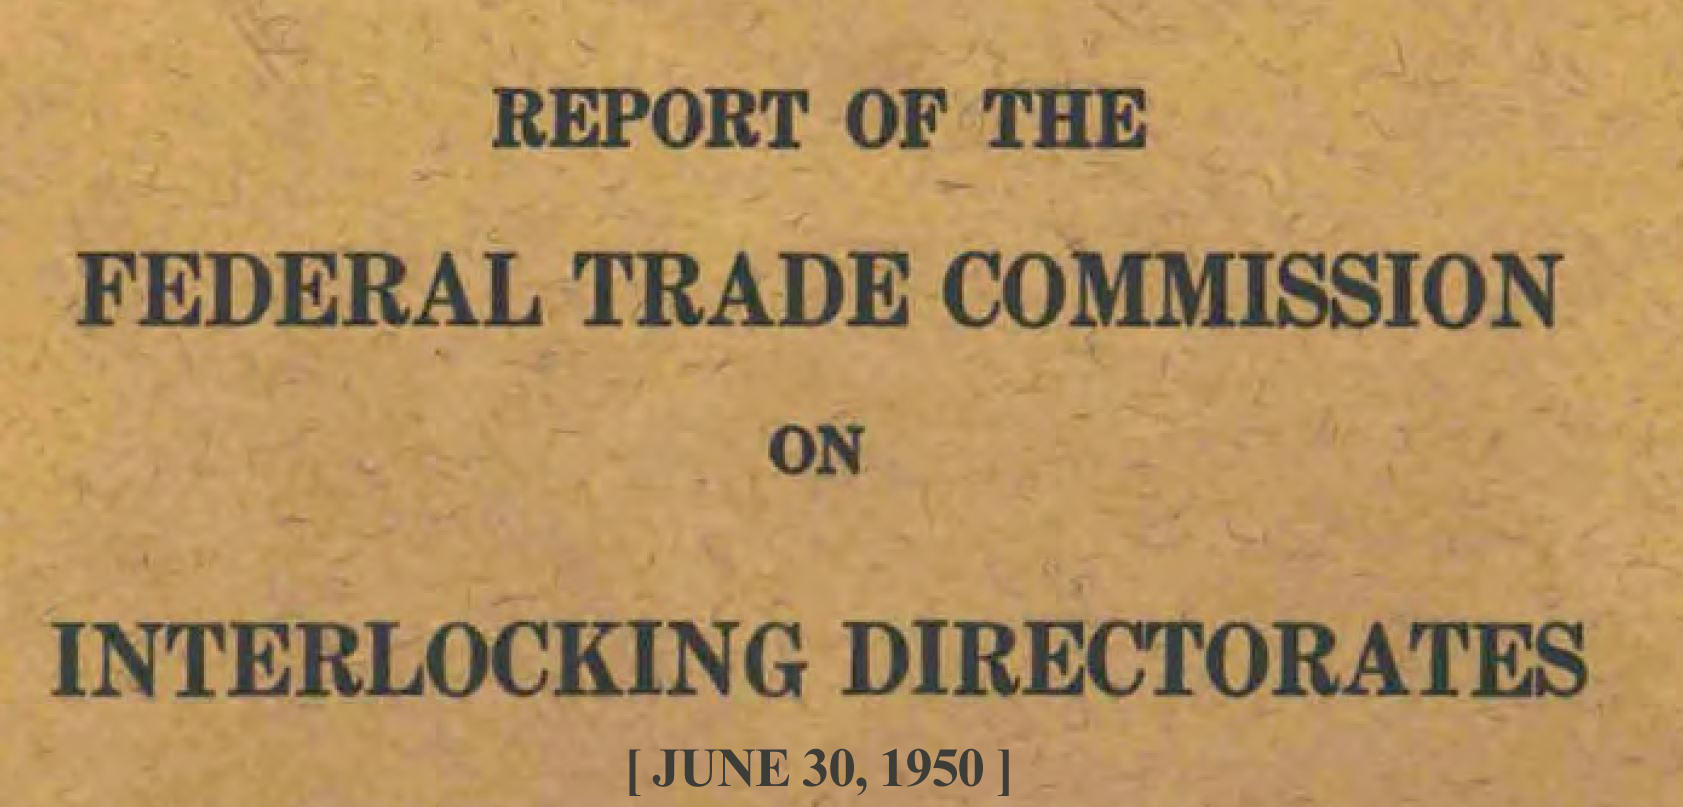 James M. Mead, Chairman. (Jun. 30, 1950). Report on Interlocking Directorates. U.S Federal Trade Commission.